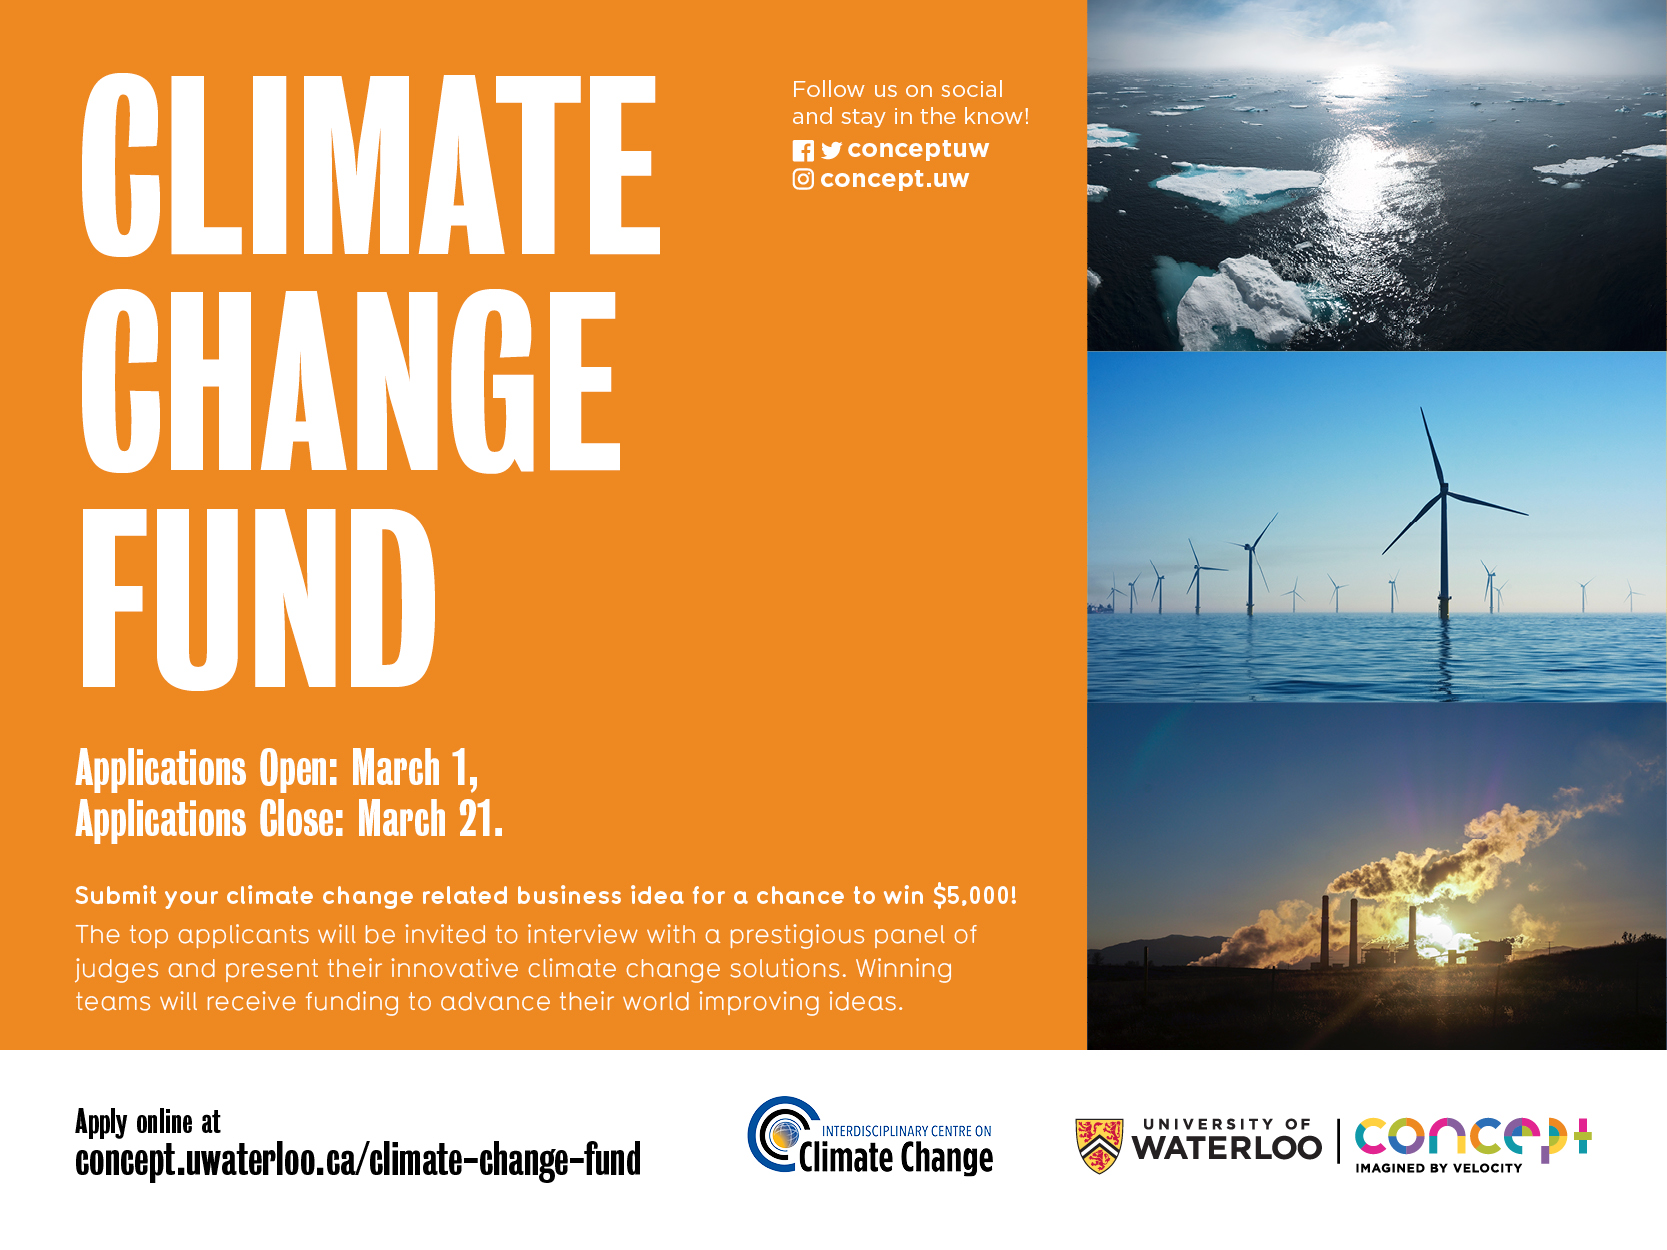 Interdisciplinary Centre on Climate Change's Climate Change Fund Promotional Poster